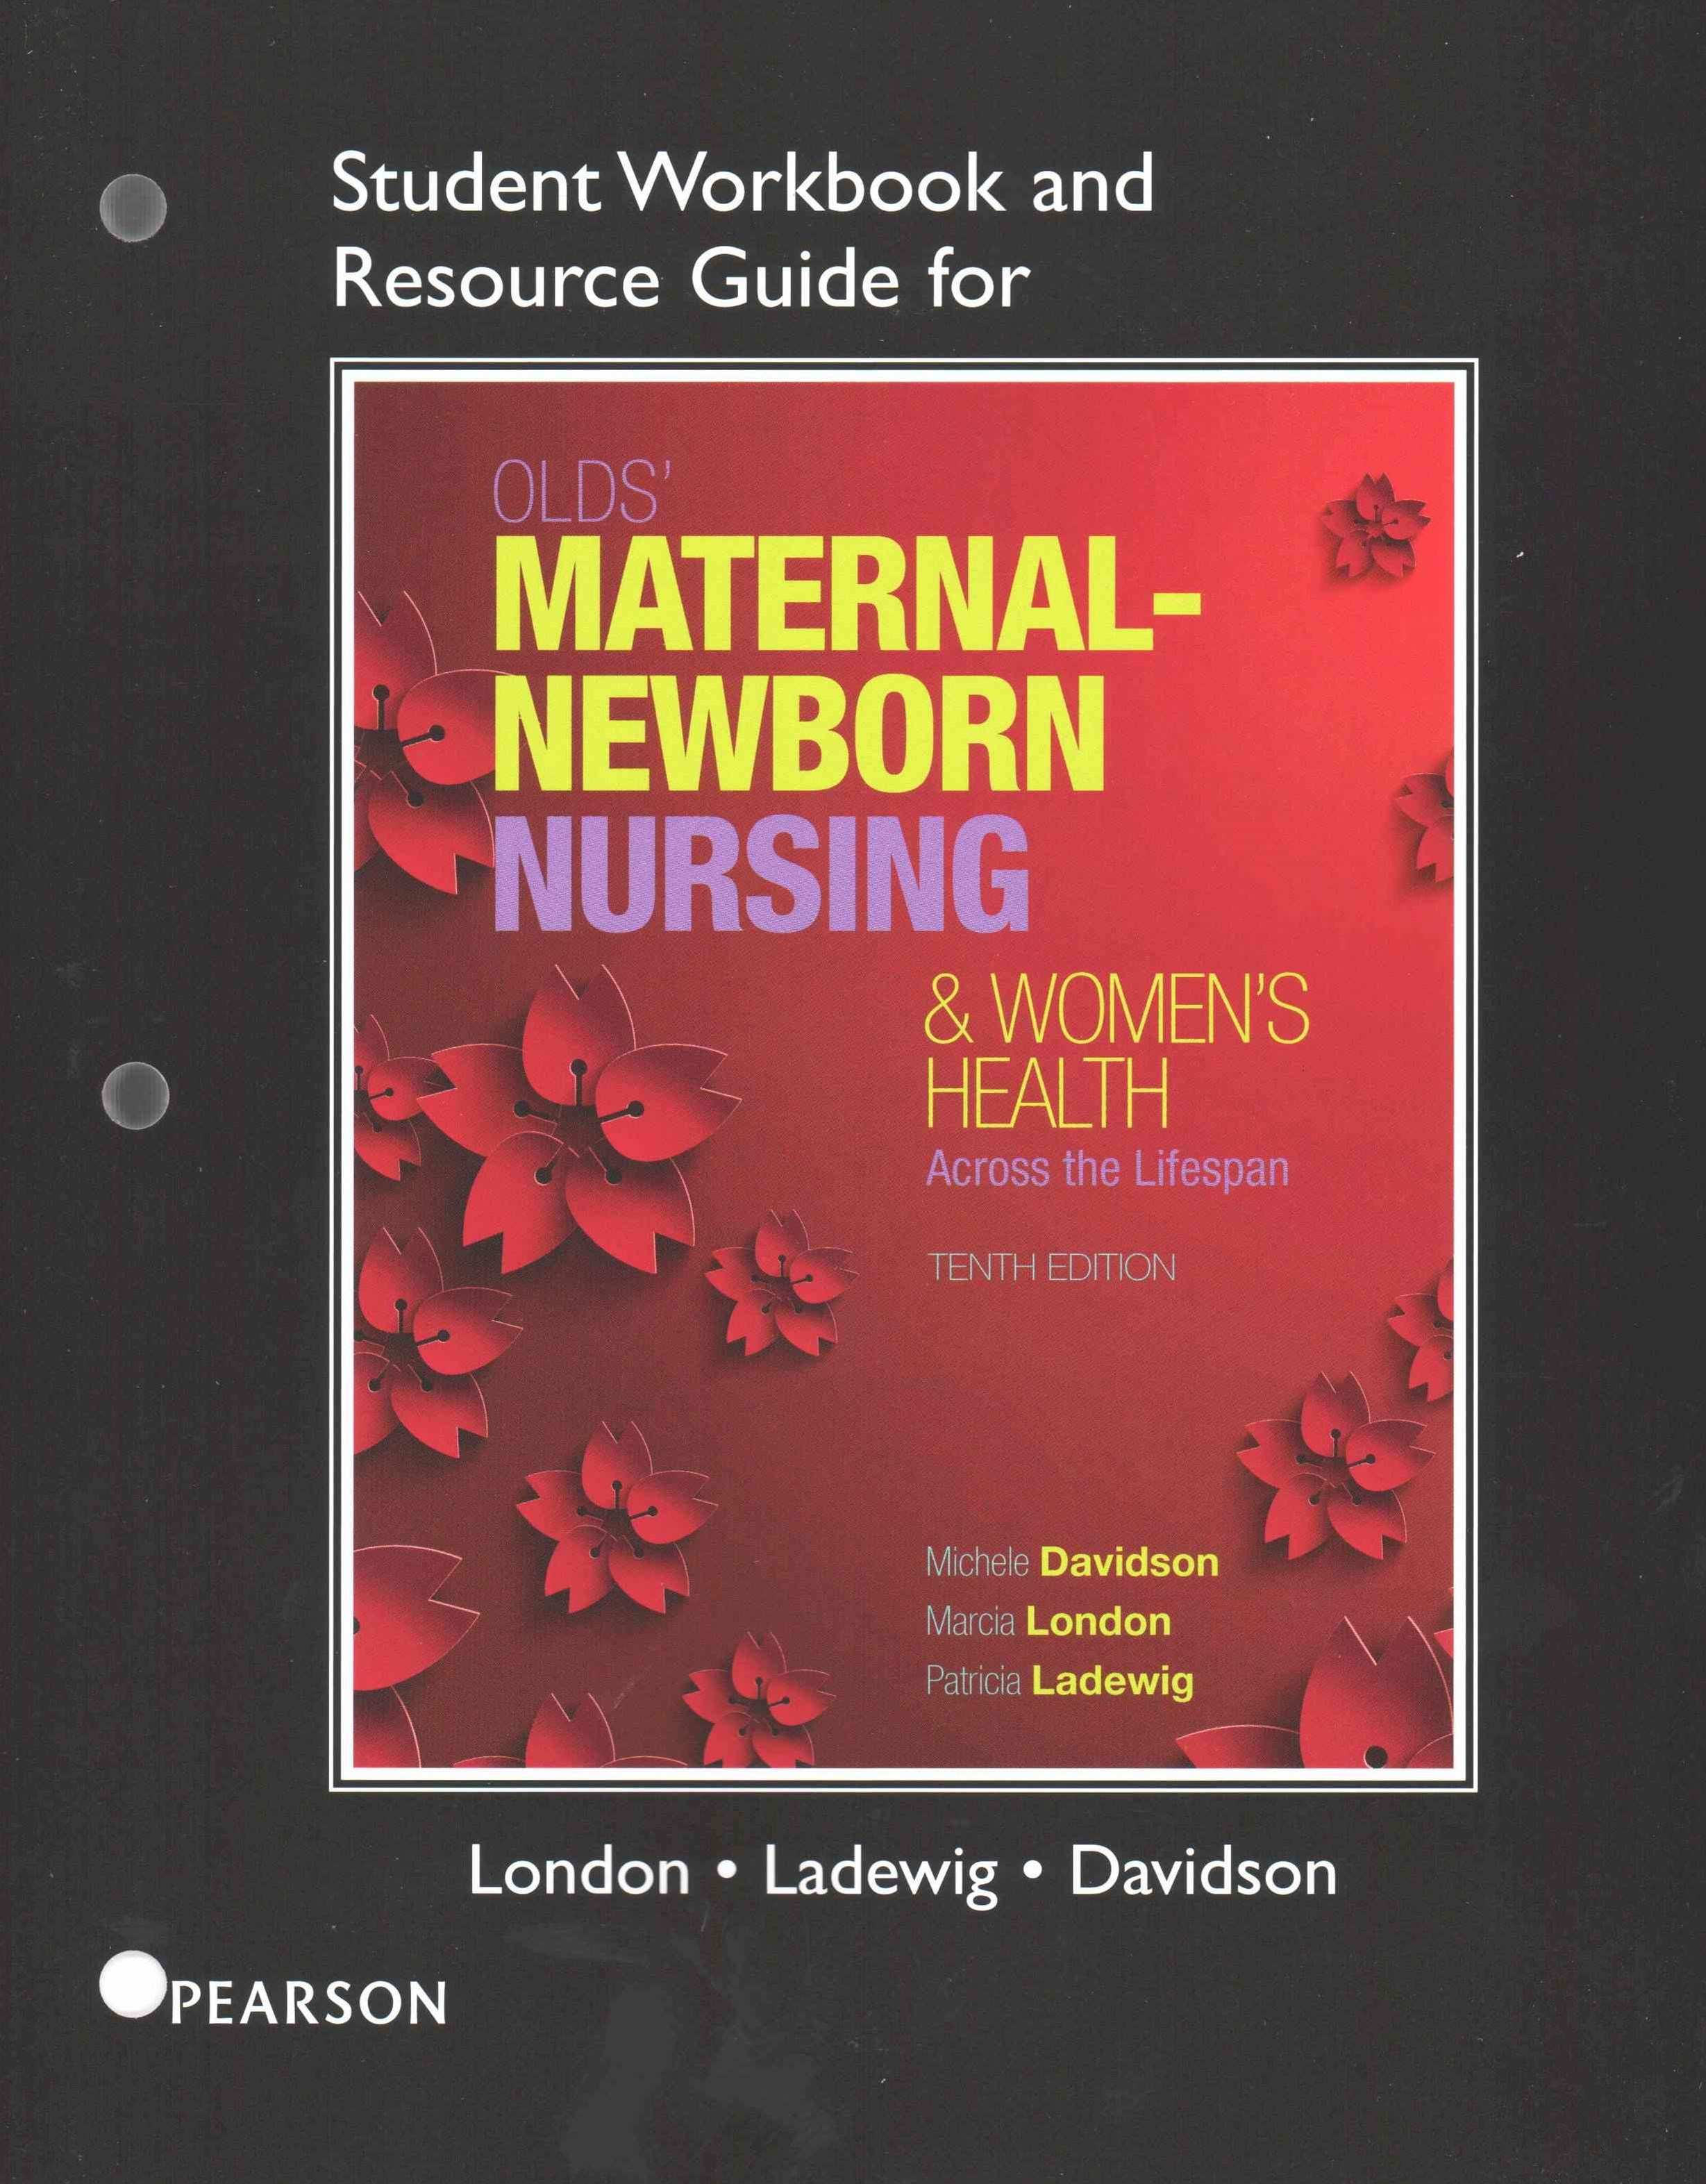 Student Workbook and Resource Guide for Olds' Maternal-Newborn Nursing & Women's Health Across the Lifespan